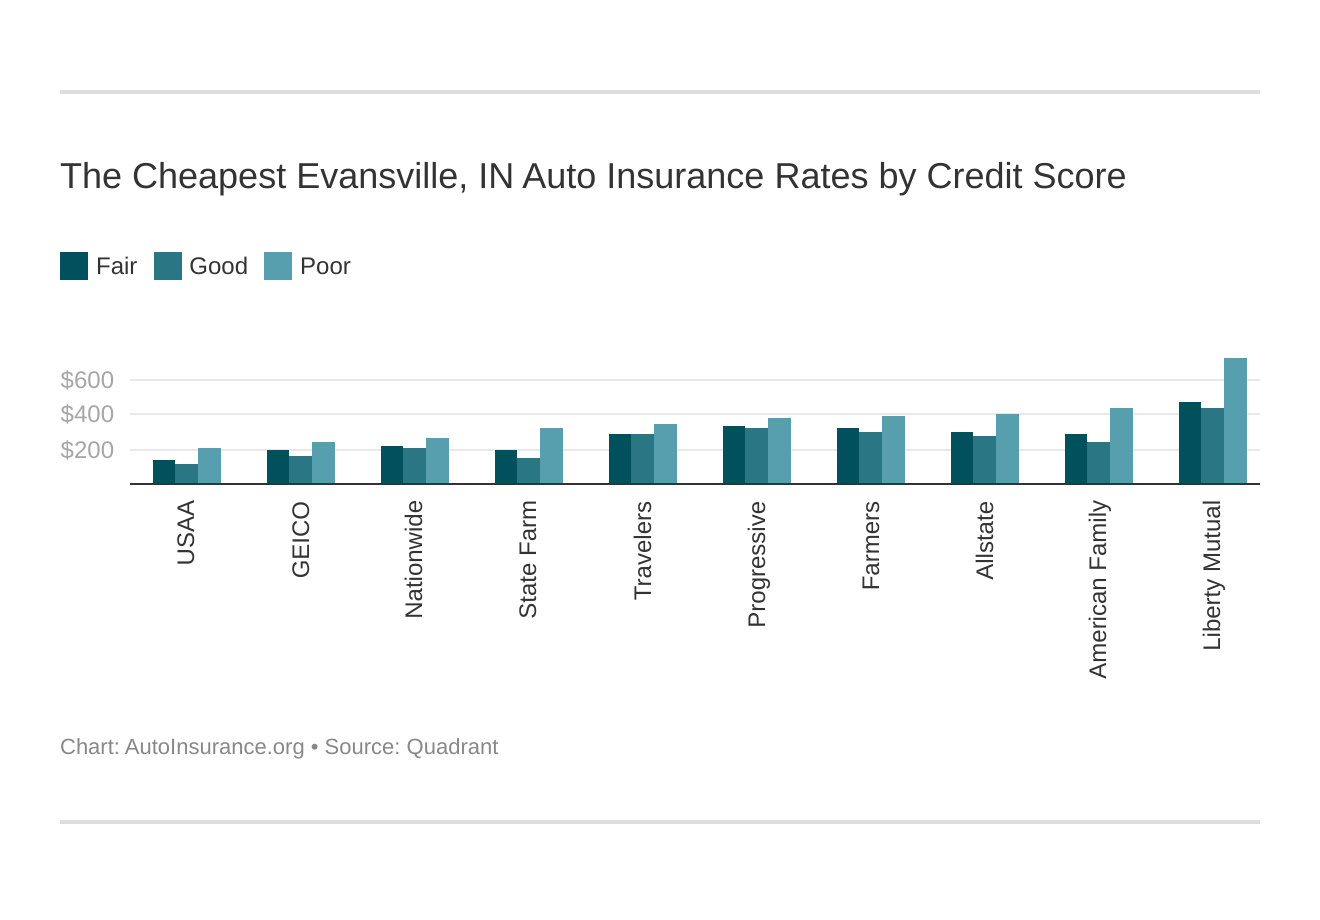 The Cheapest Evansville, IN Auto Insurance Rates by Credit Score